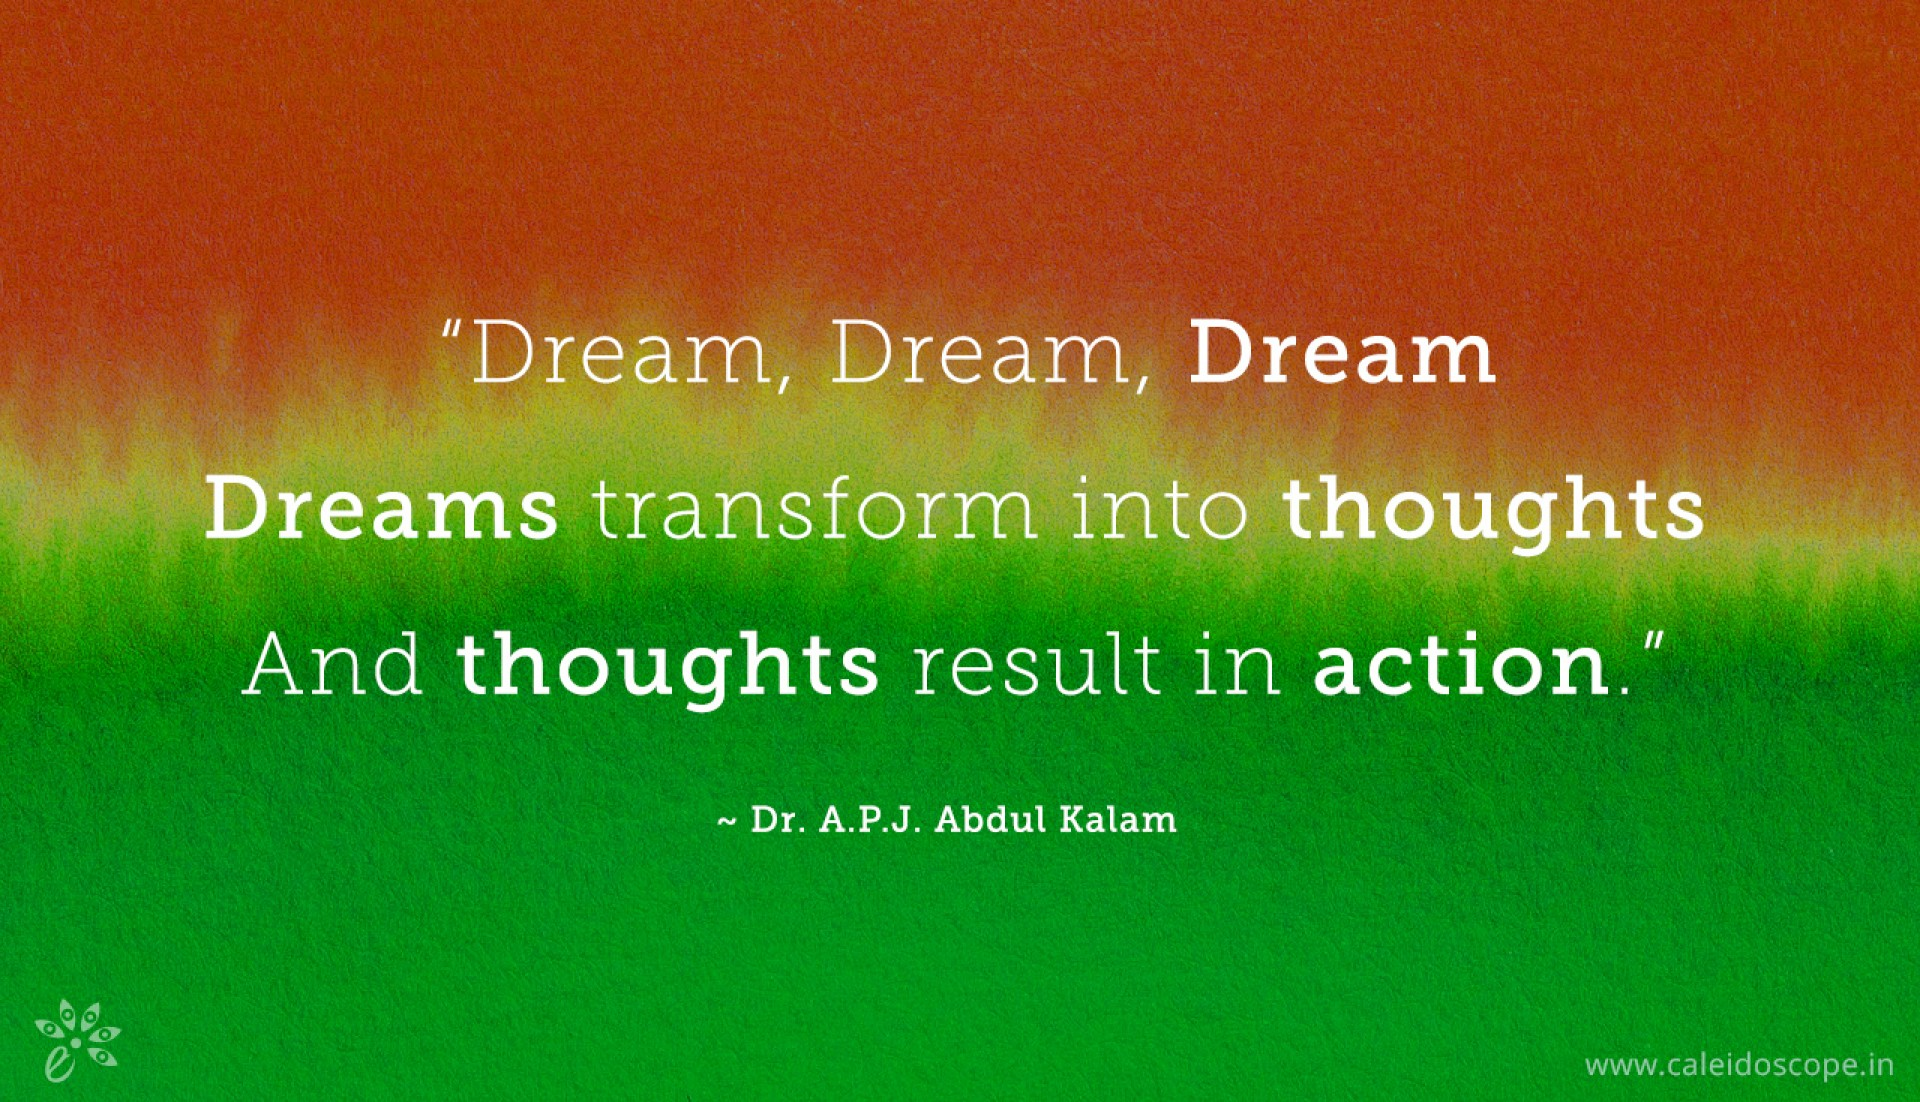 013 Apj Abdul Kalam Quote Essay Example My Exceptional Inspiration In English 400 Words Hindi 1920